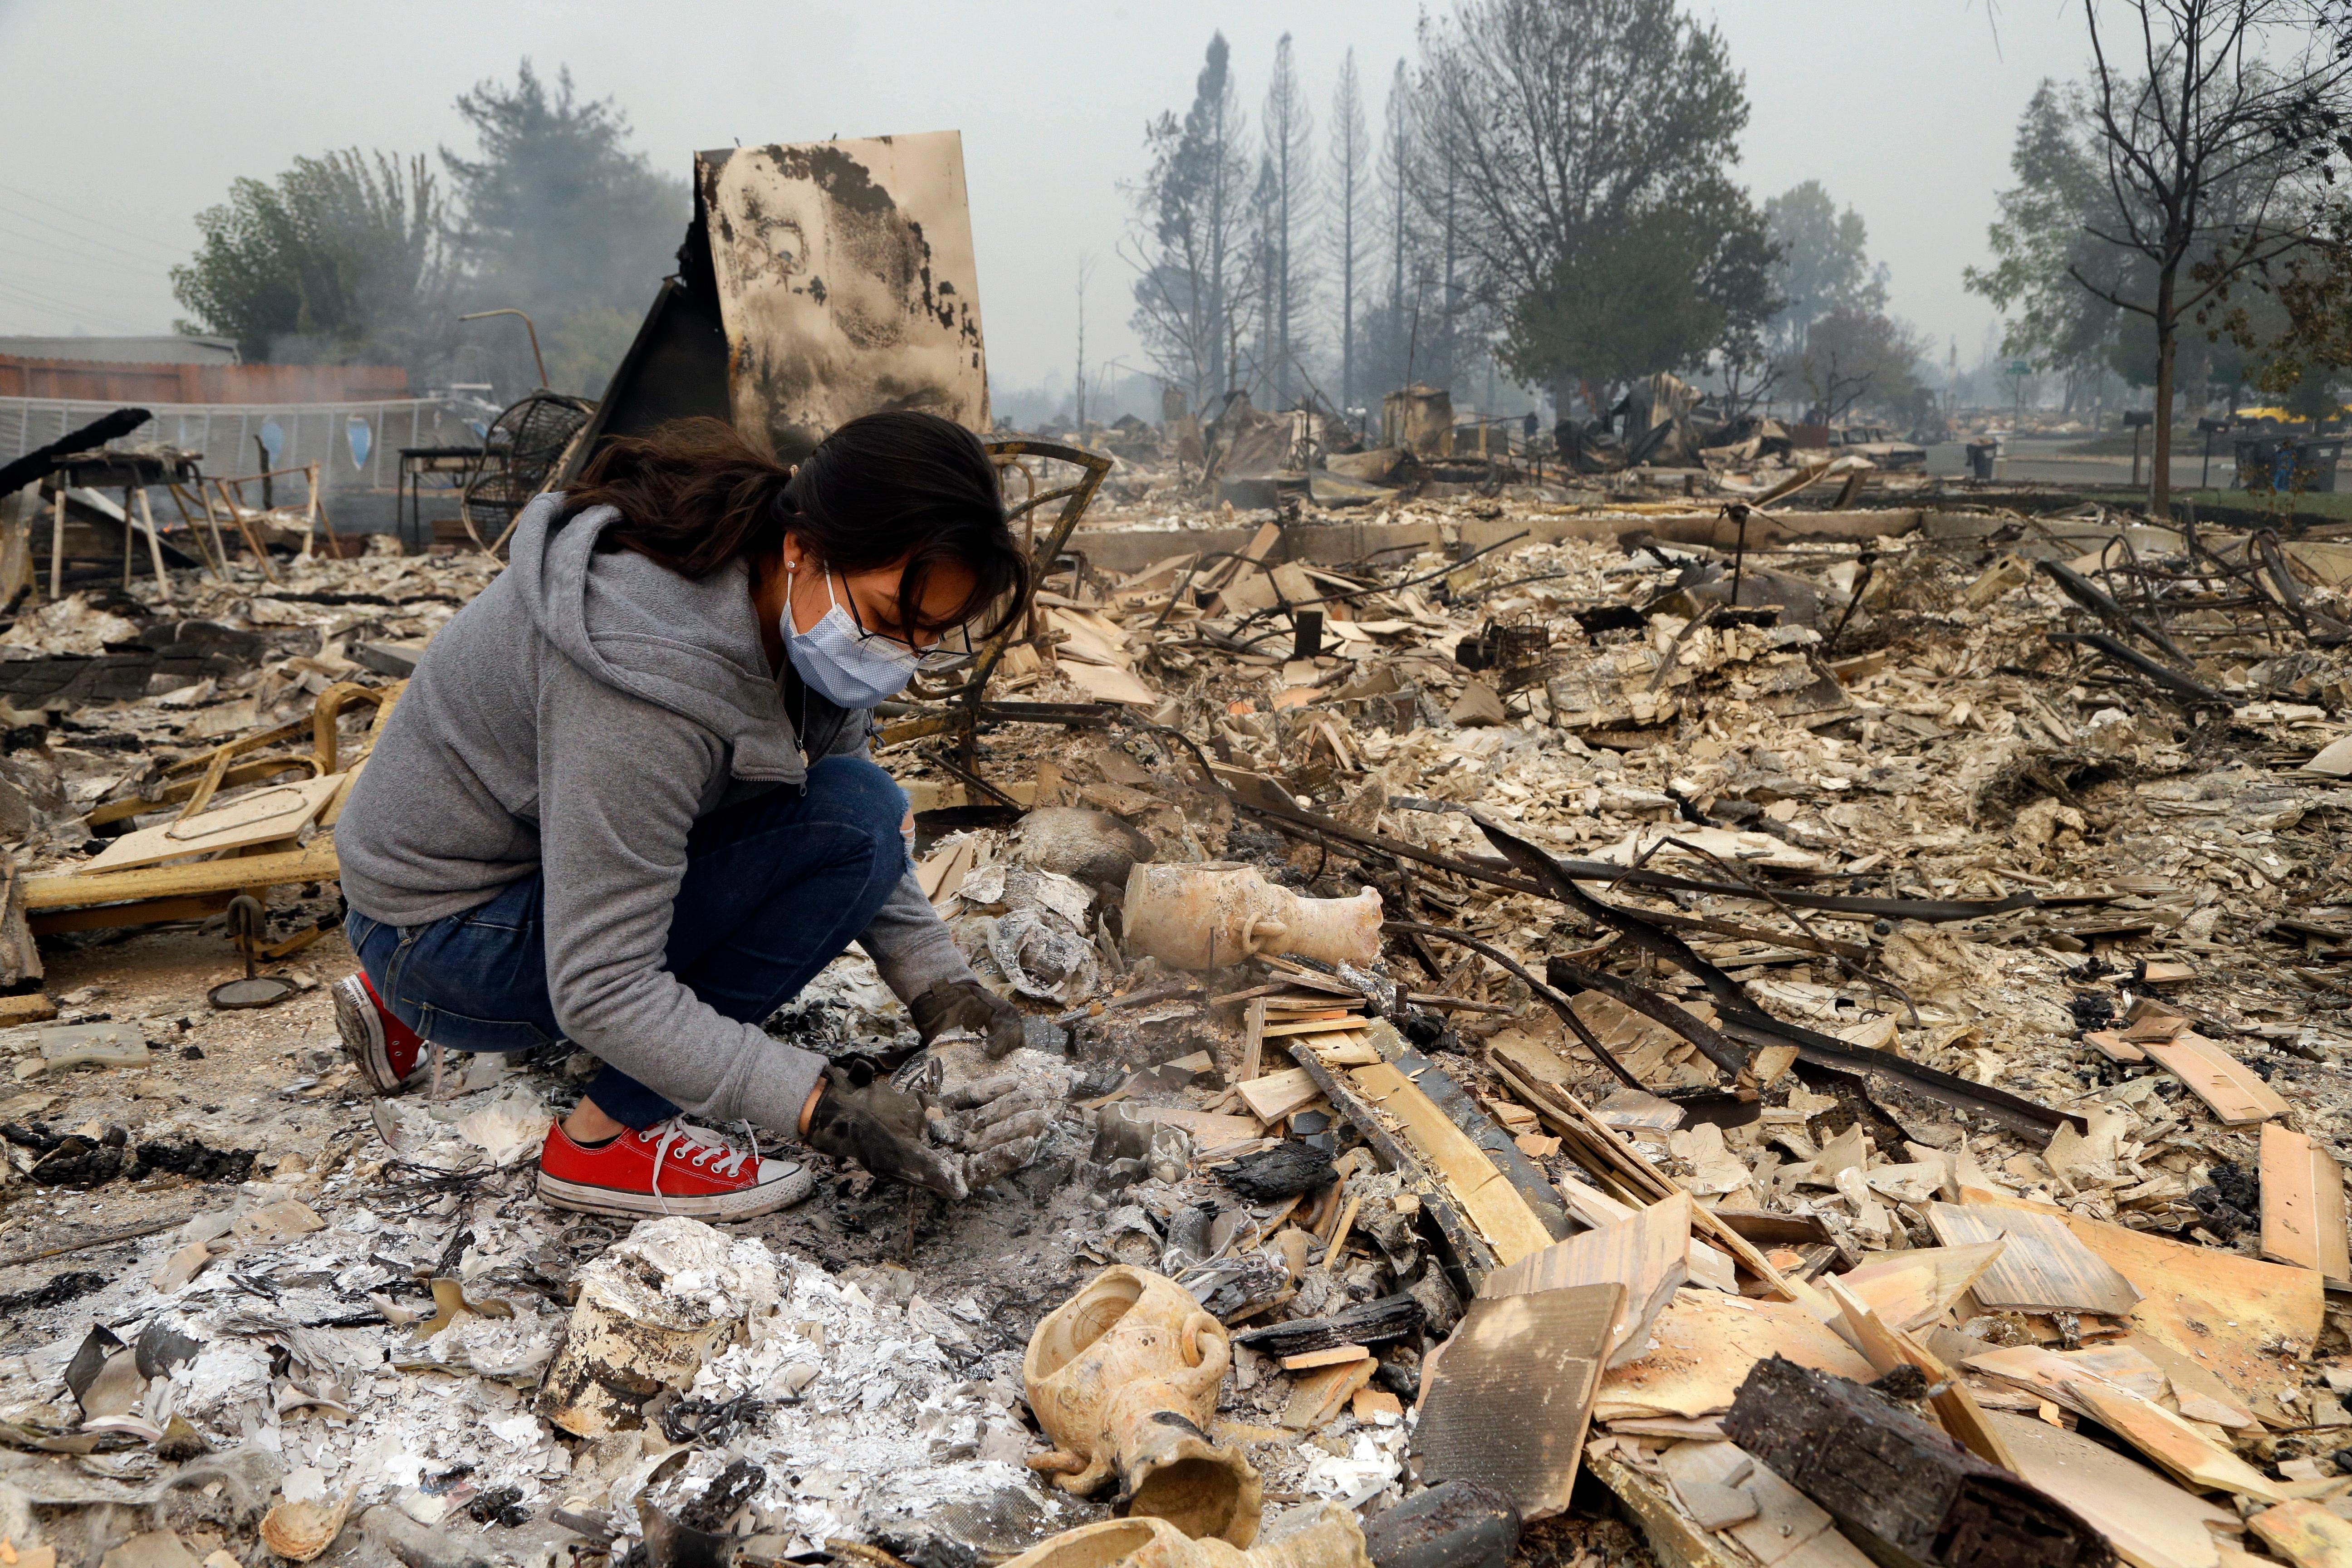 Leslie Garnica searches for belongings in the ashes of her home that was destroyed by fire in the Coffey Park area of Santa Rosa, Calif., on Tuesday, Oct. 10, 2017. An onslaught of wildfires across a wide swath of Northern California broke out almost simultaneously then grew exponentially, swallowing up properties from wineries to trailer parks and tearing through both tiny rural towns and urban subdivisions. (AP Photo/Ben Margot)